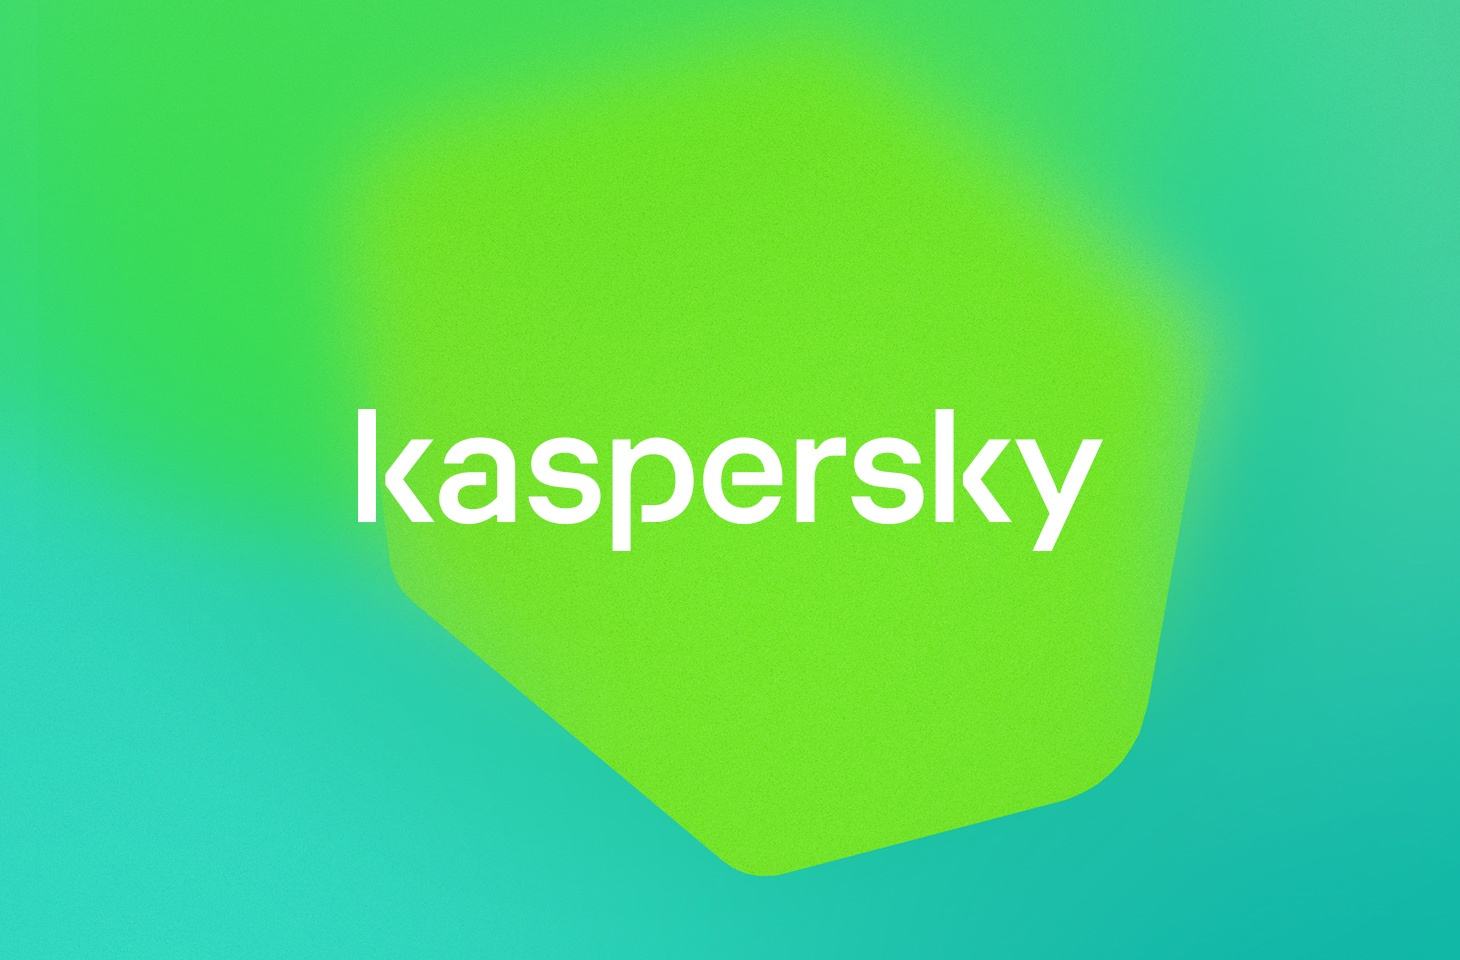 Kaspersky's head of brand design explains how we engineered the new brand